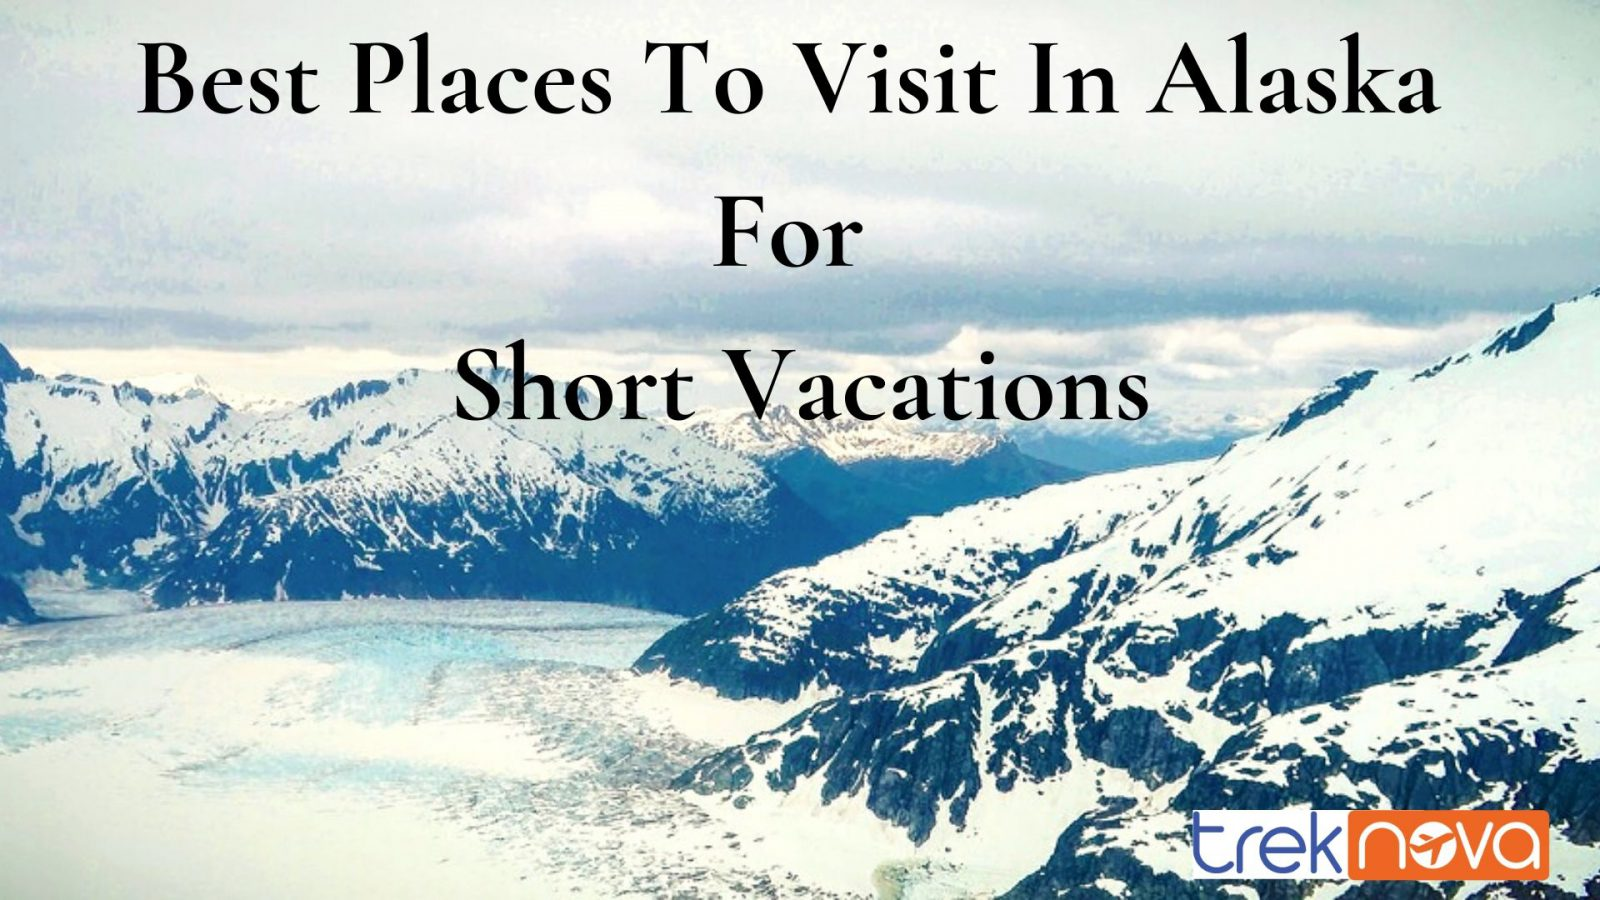 Best Places To Visit In Alaska For Short Vacations